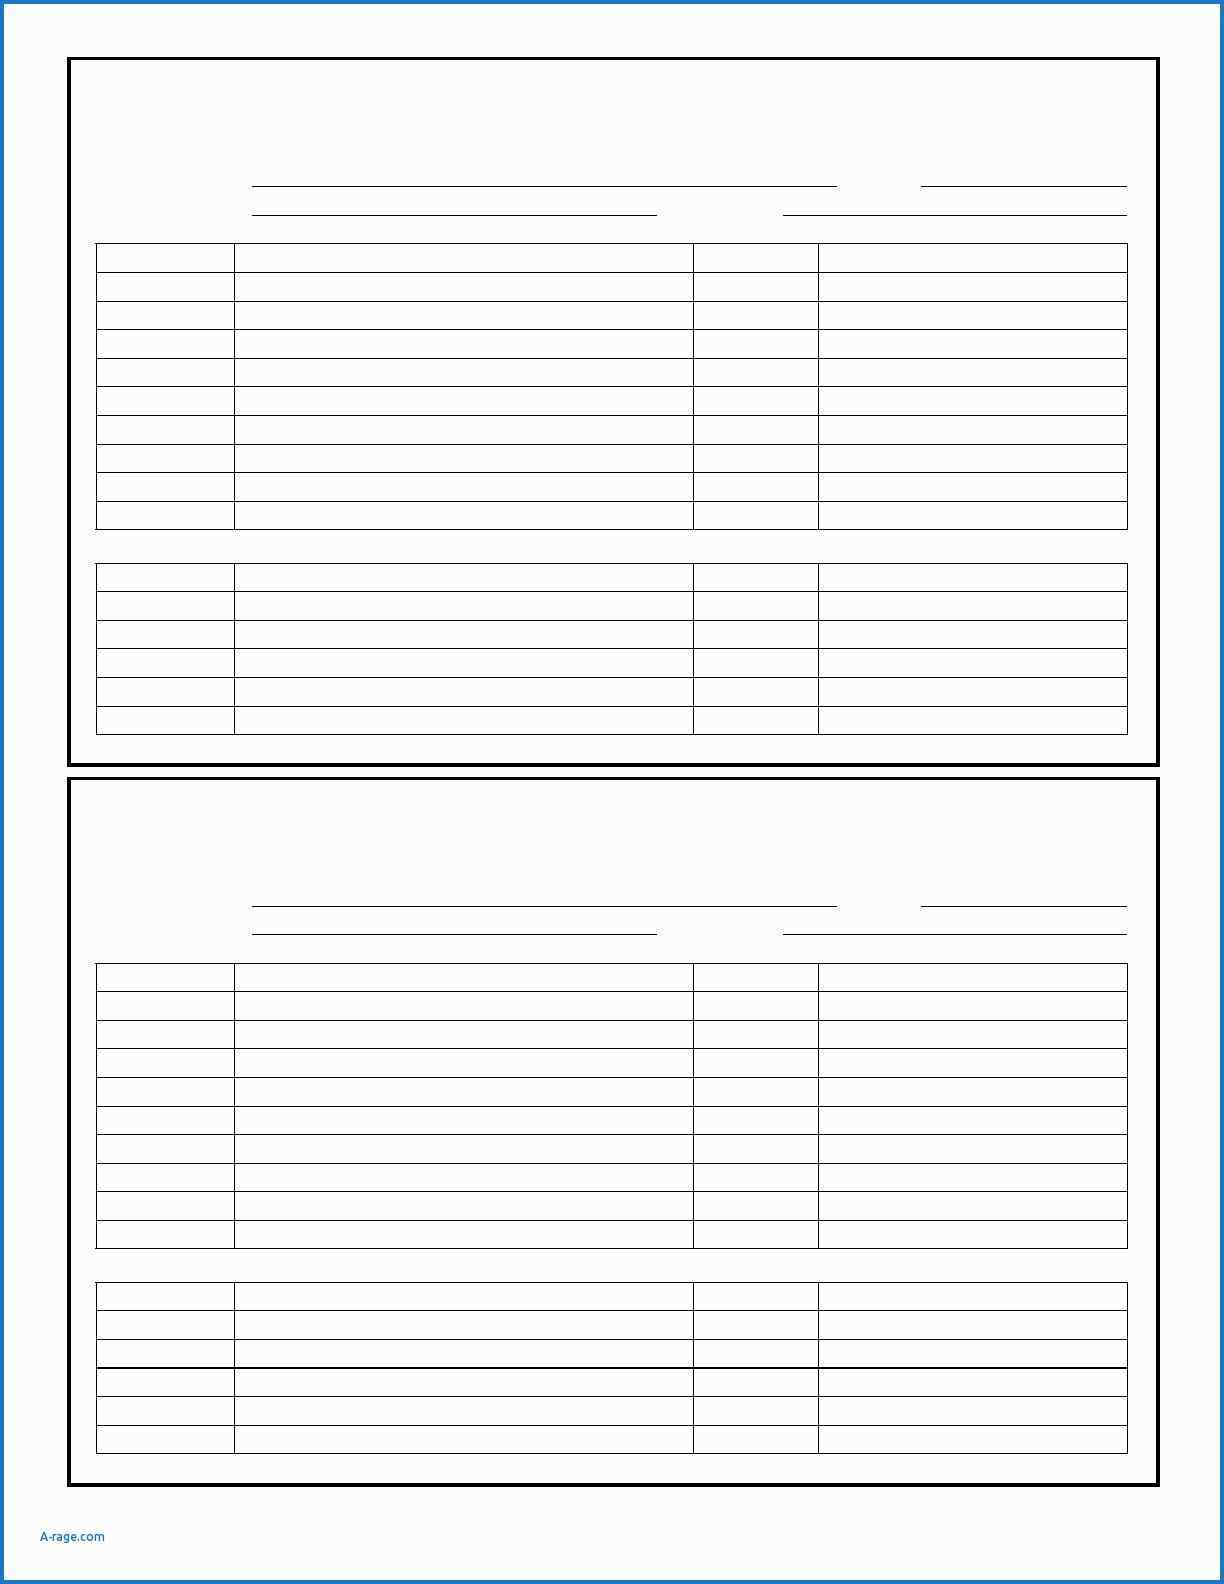 image regarding Printable Softball Lineup Cards titled Softball Industry Work opportunities Chart Elsolcali Co -